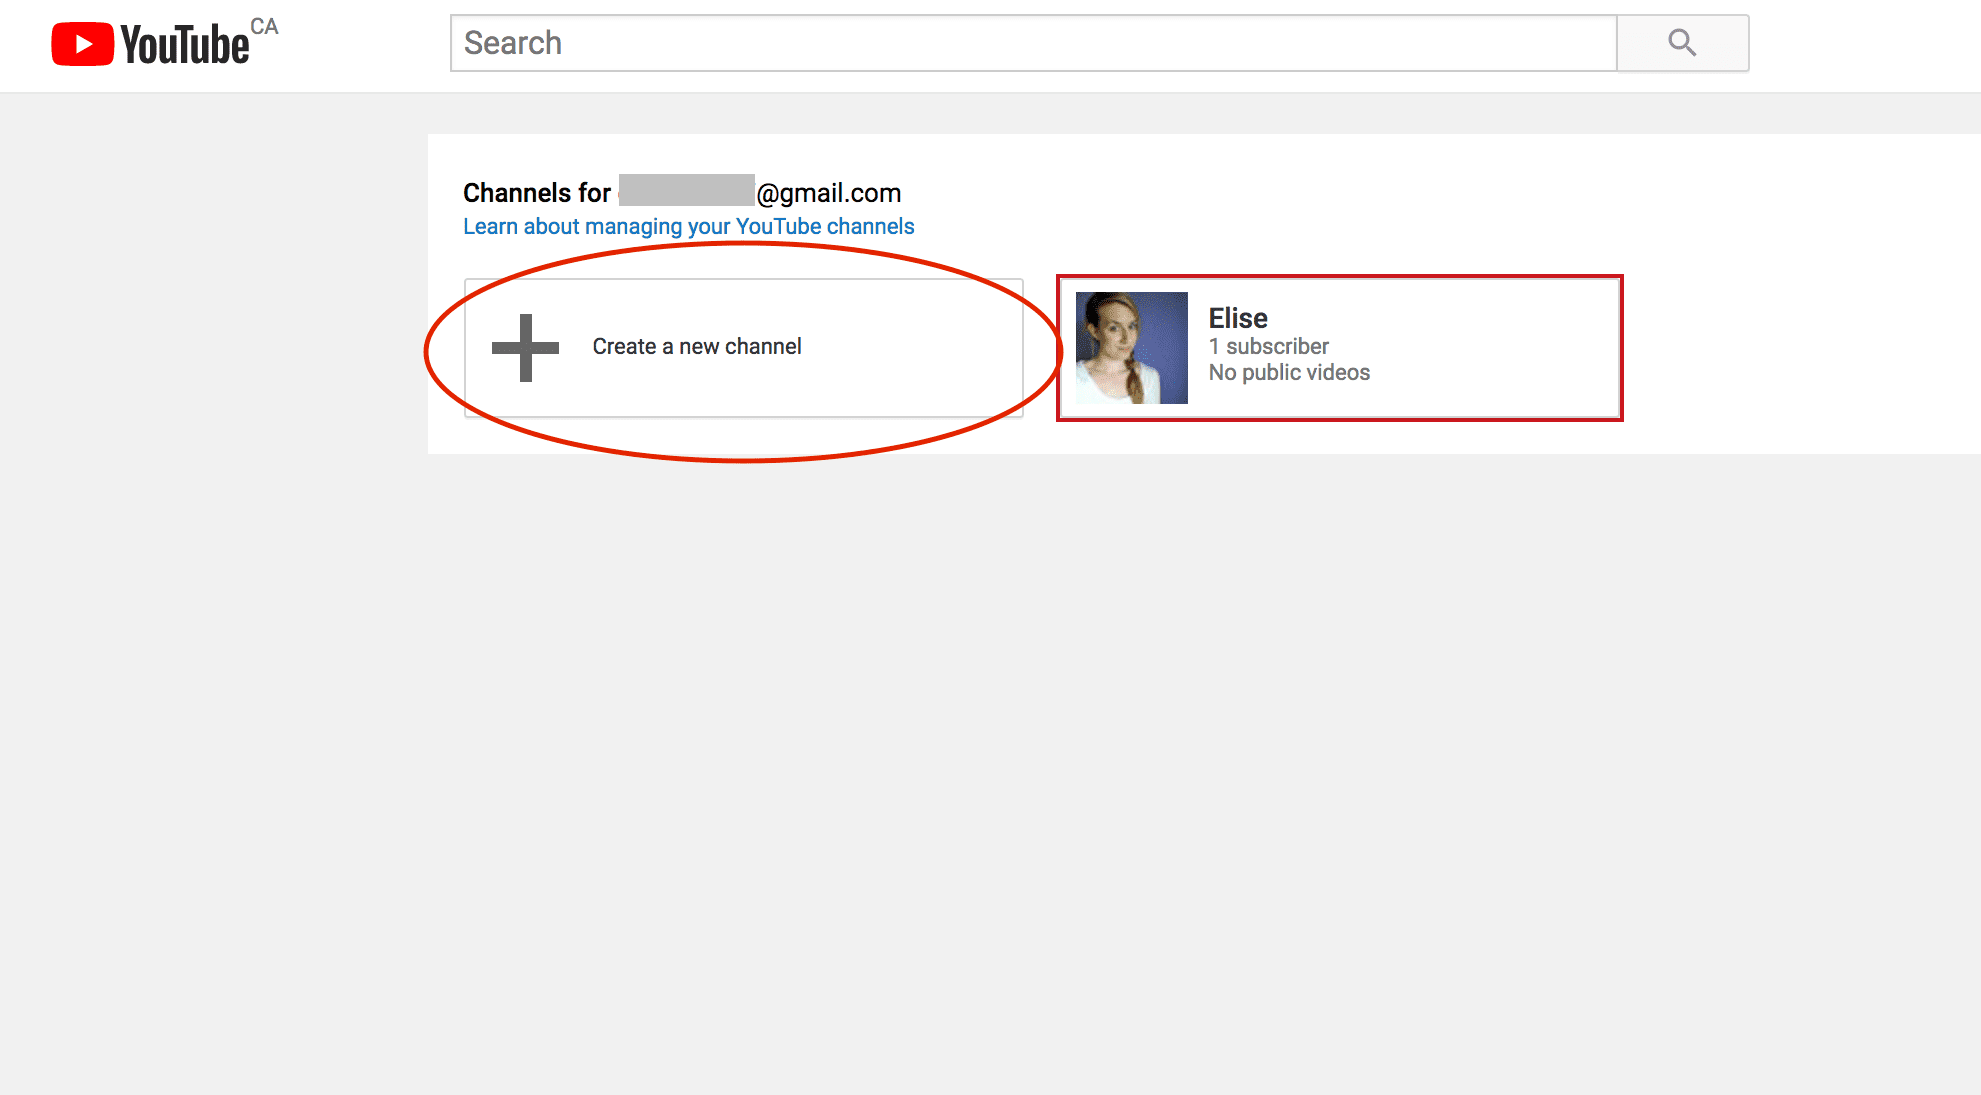 How to Change Your YouTube Name and Channel Name